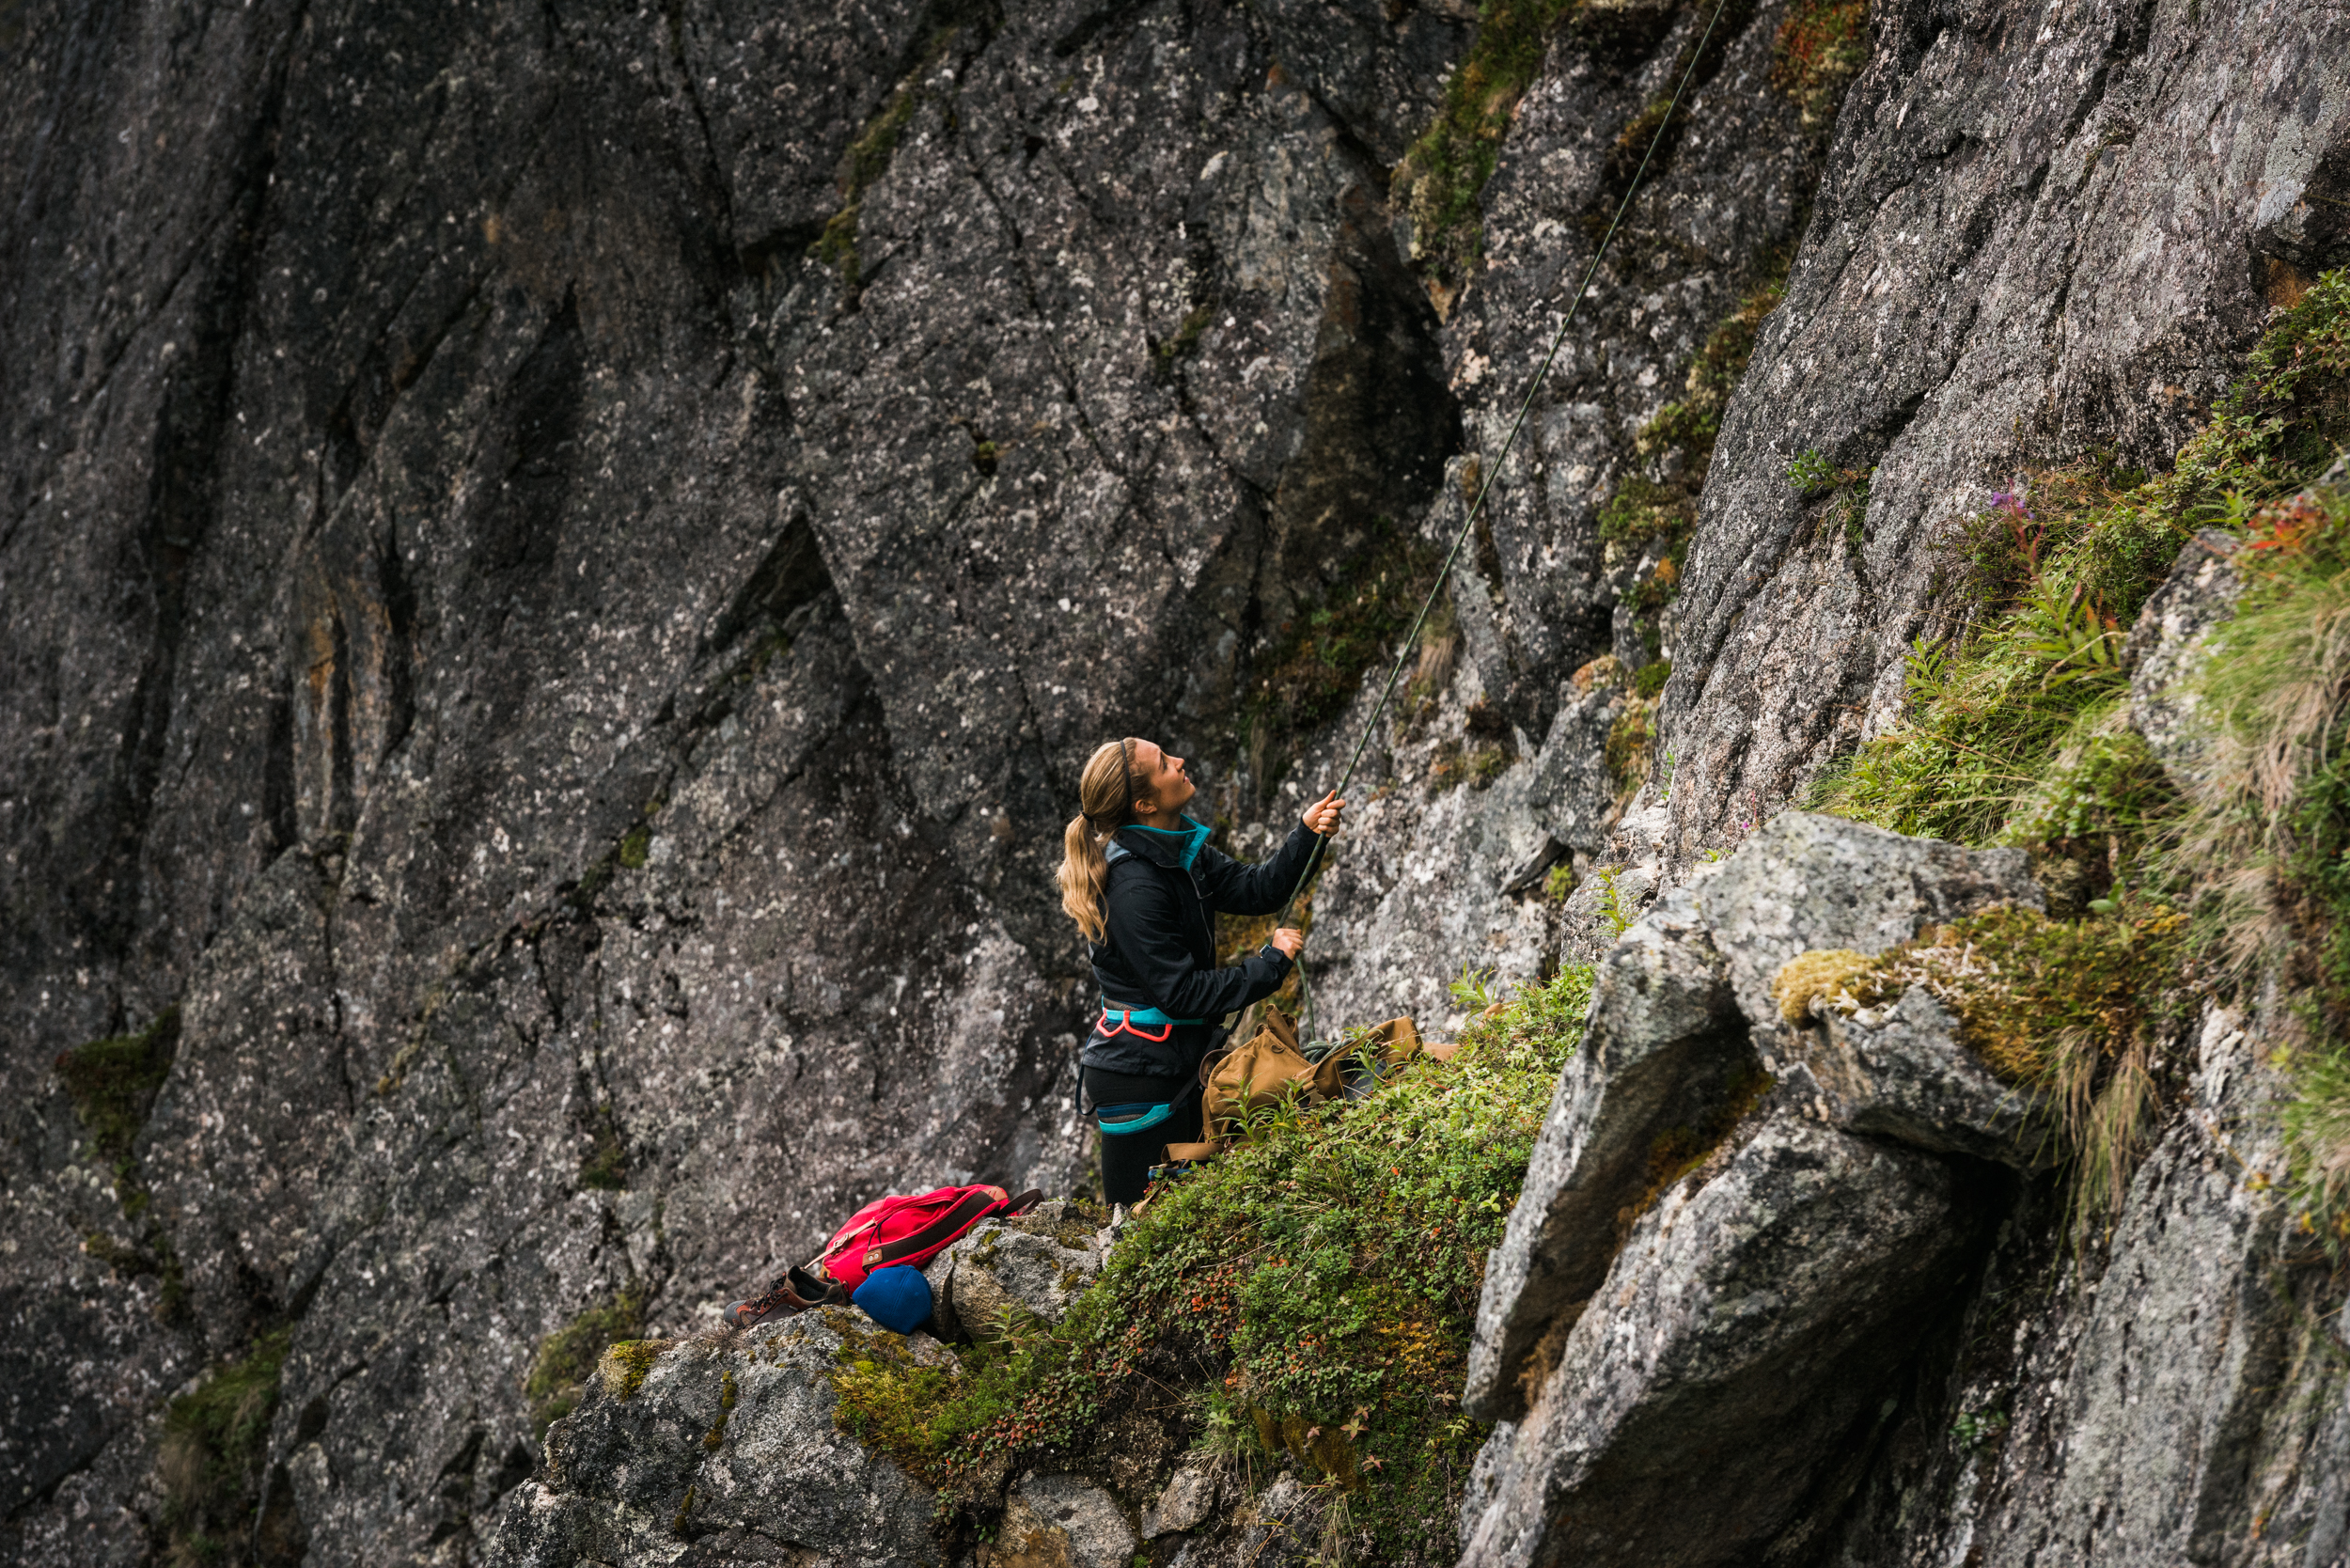 TaraShupe_Photography_Alaska_RockClimbing_HatchersPass_Travel_Photographer_Women_Adventure_048.jpg